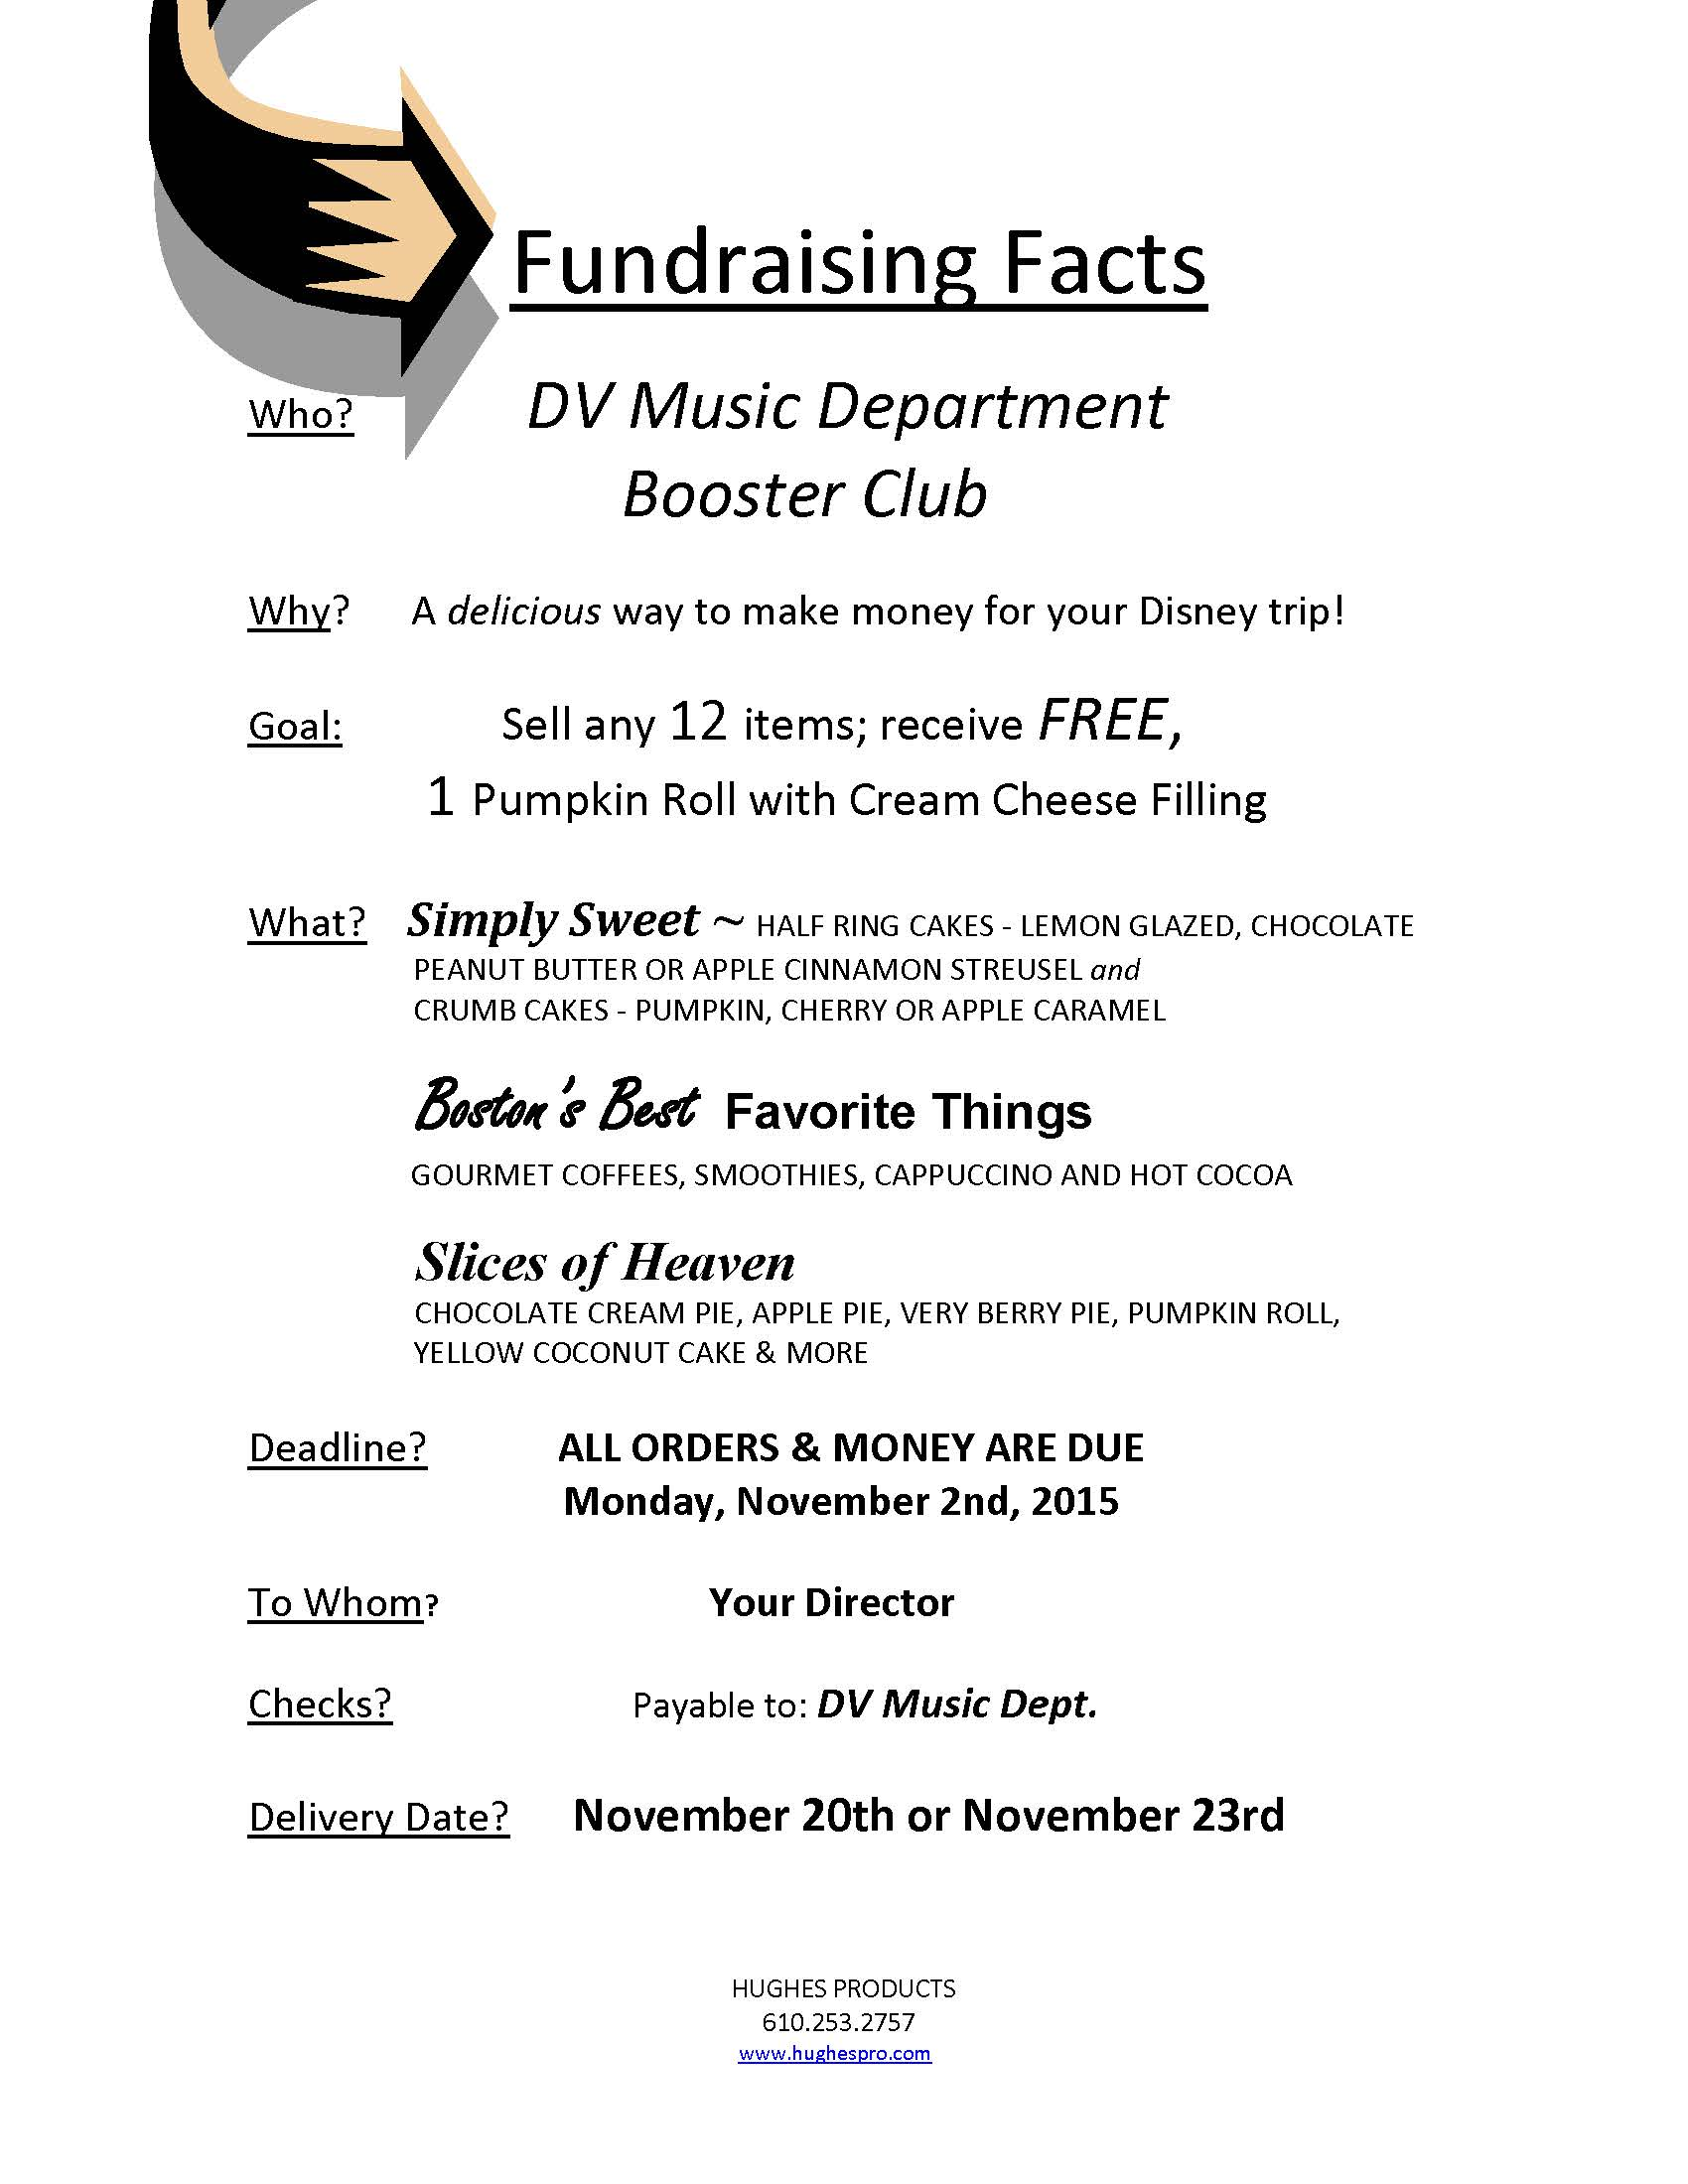 hughes products fundraiser flyers and info dv music dept booster hughesprodfundraiser flyer